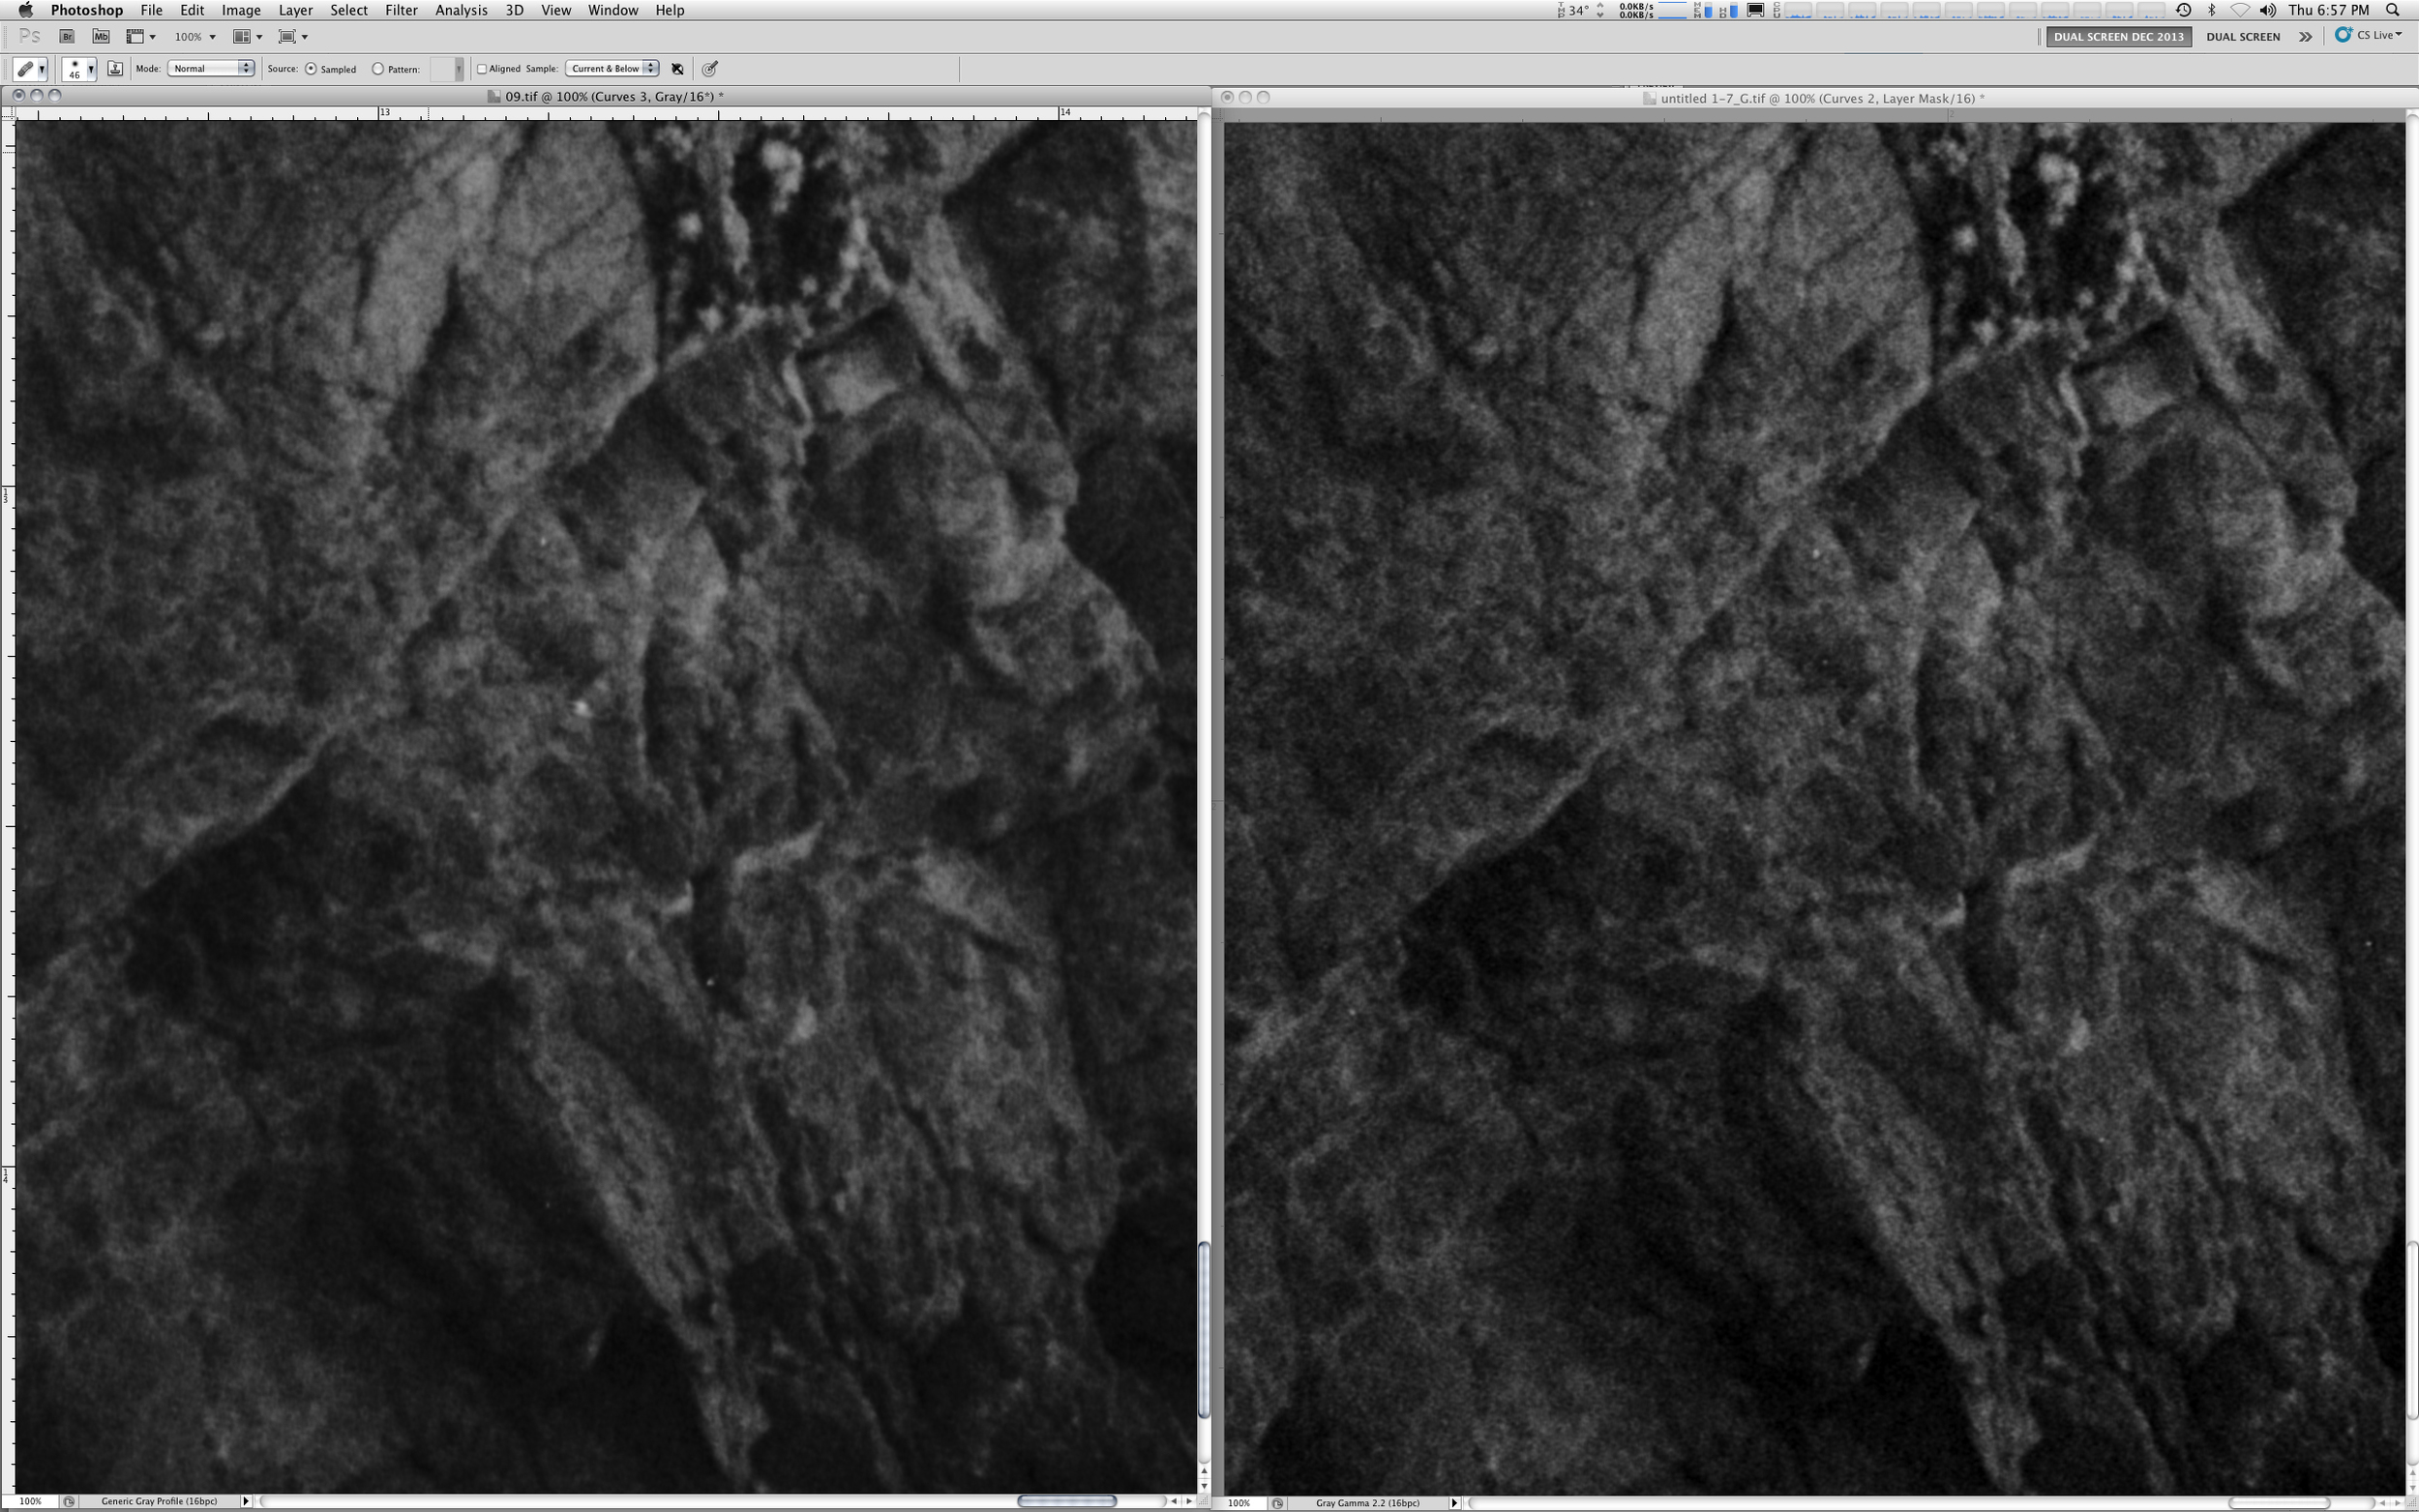 Comparison of a negative scanned with an Epson 750 (wet-mounted) and a Screen 1045AI Drum Scanner at 4800 SPI